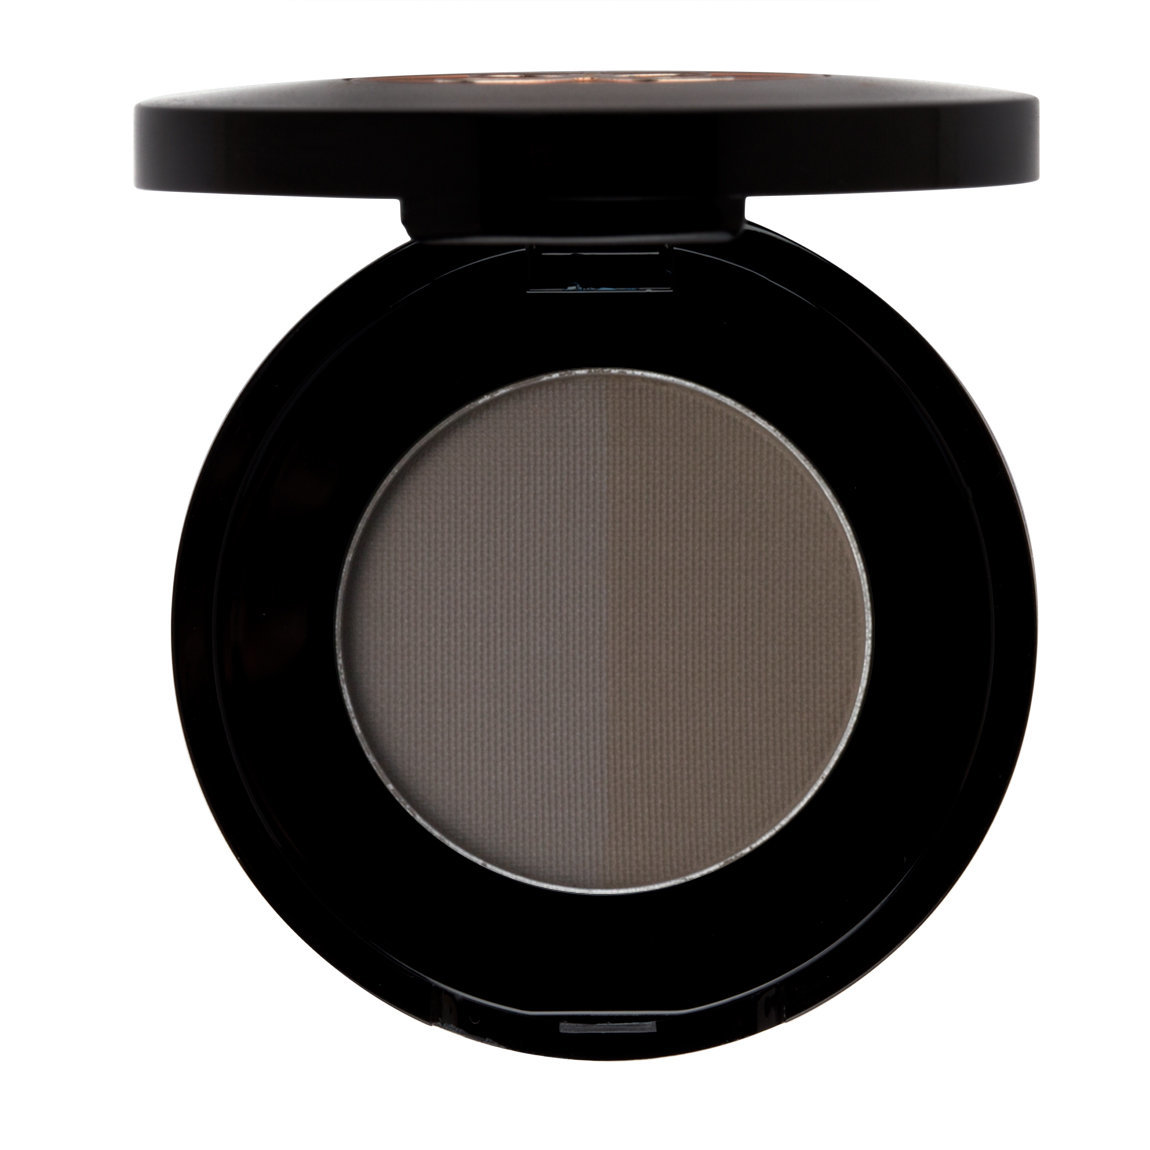 Anastasia Beverly Hills Brow Powder Duo Ash Brown alternative view 1 - product swatch.